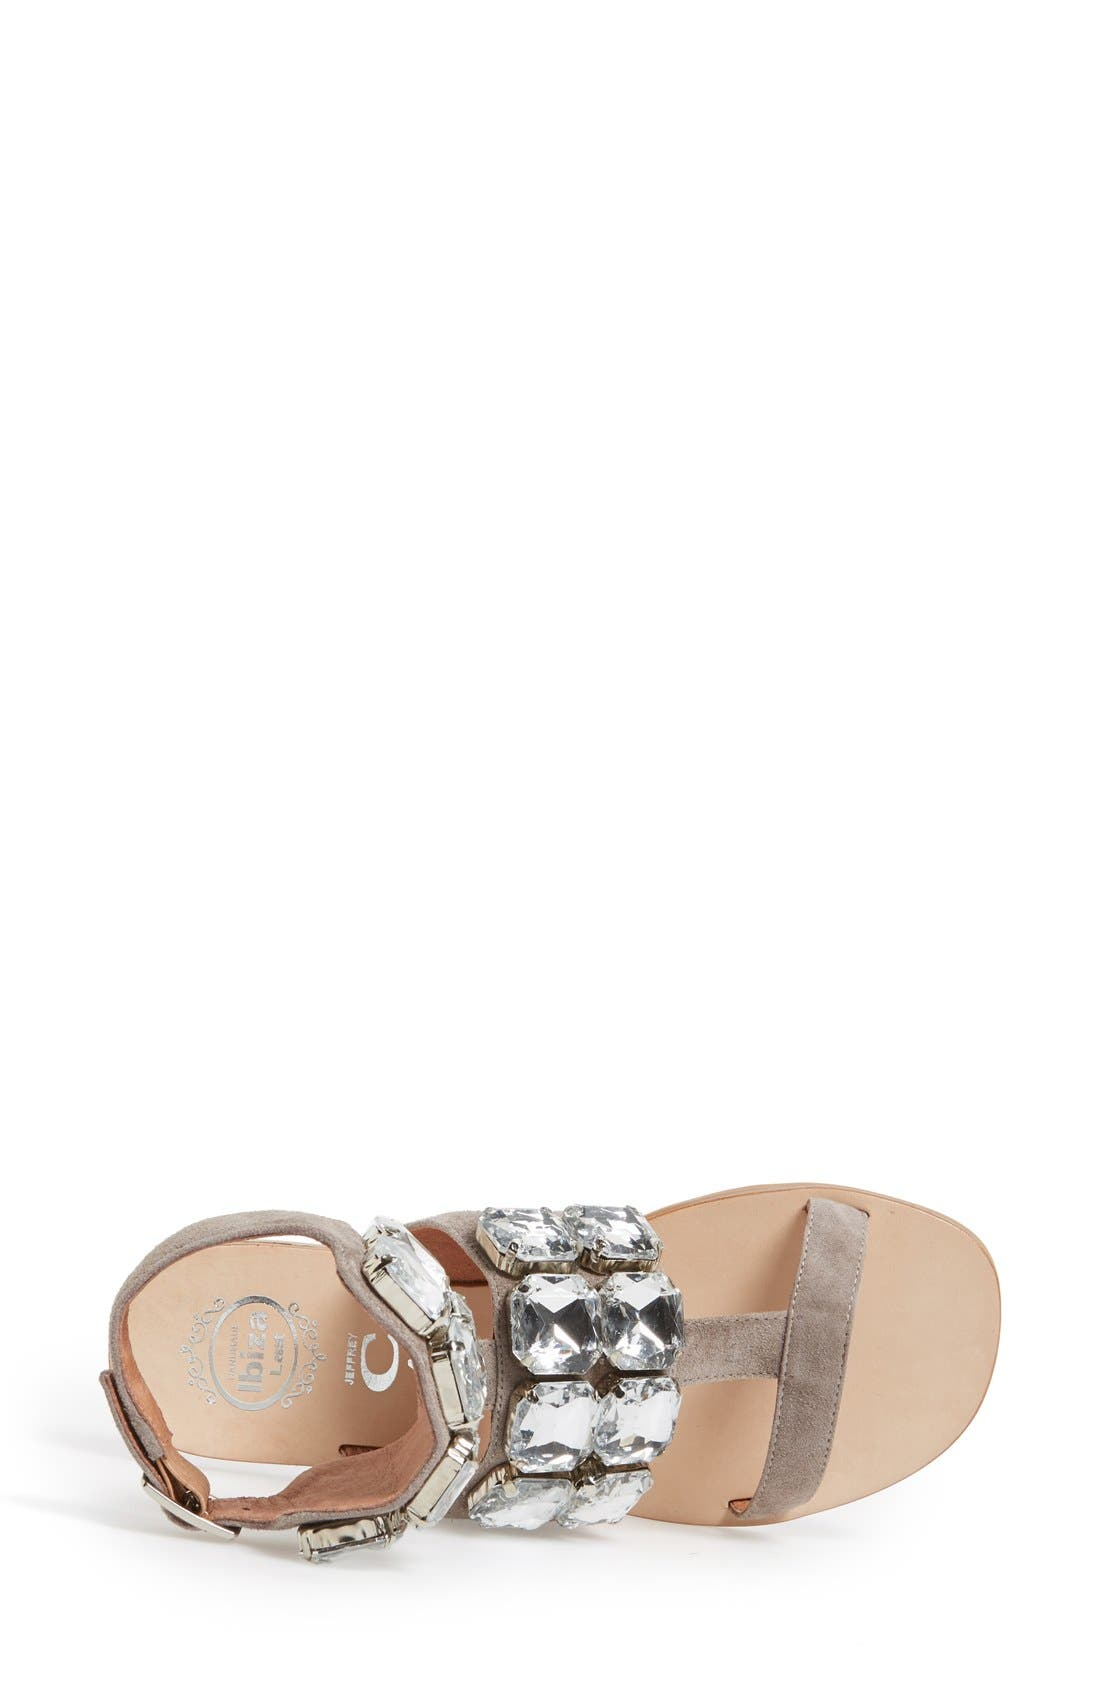 JEFFREY CAMPBELL, 'Sabita' Jeweled Suede Ankle Strap Sandal, Alternate thumbnail 3, color, 060